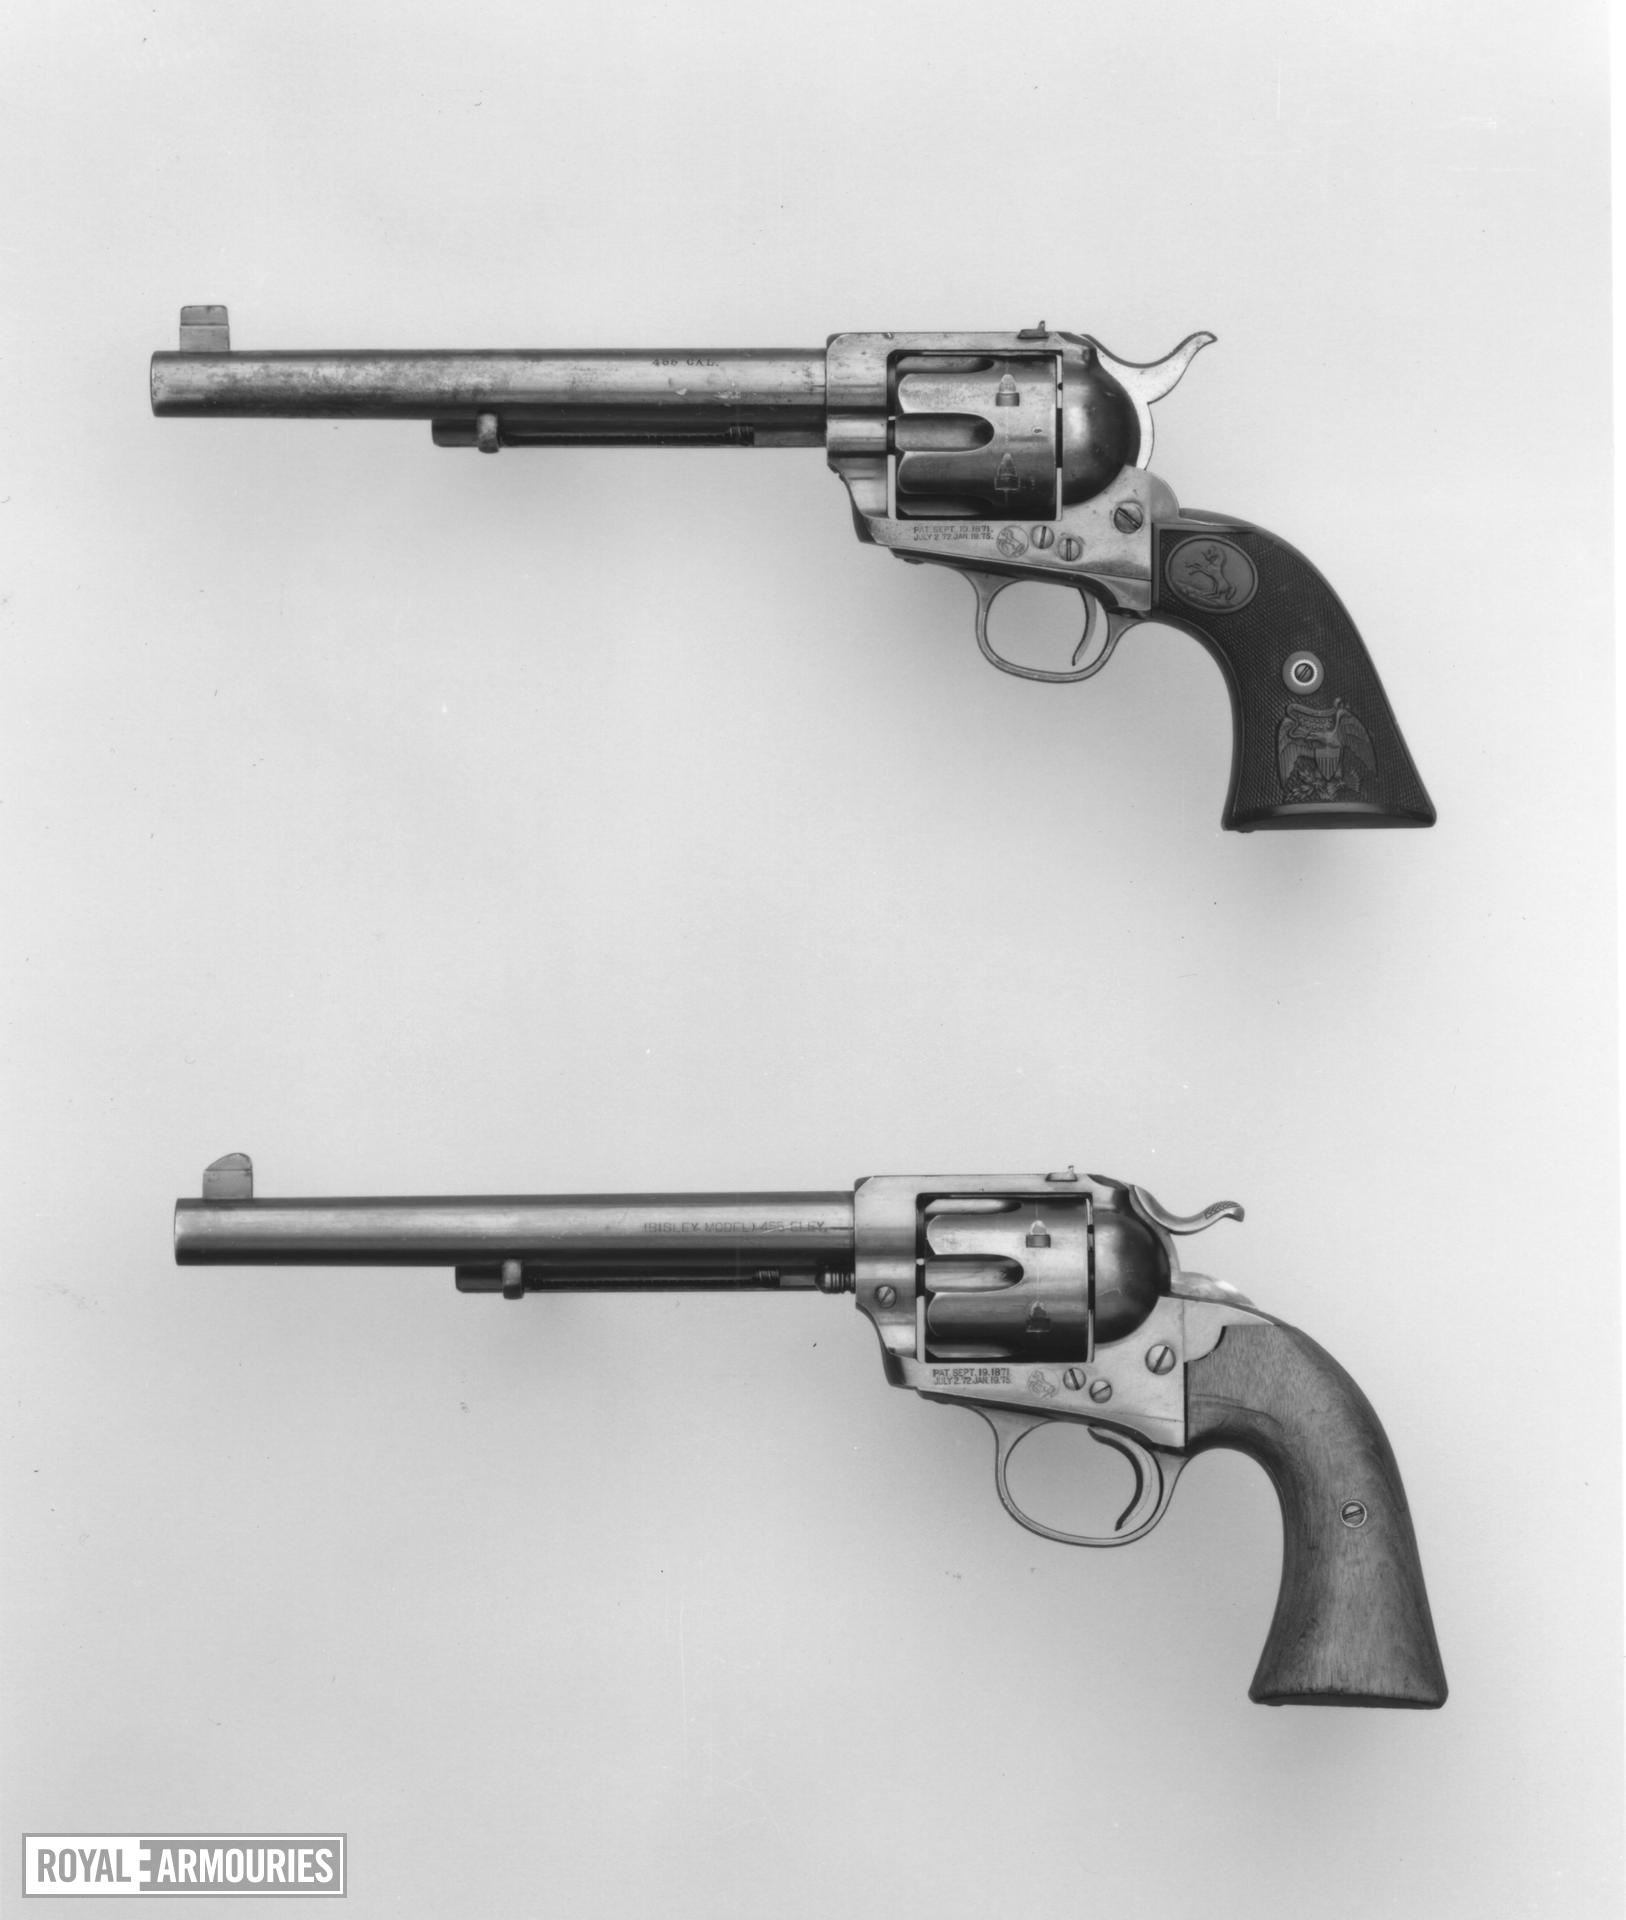 Centrefire six-shot revolver - Colt Single Action Army model 1873 (SAA)